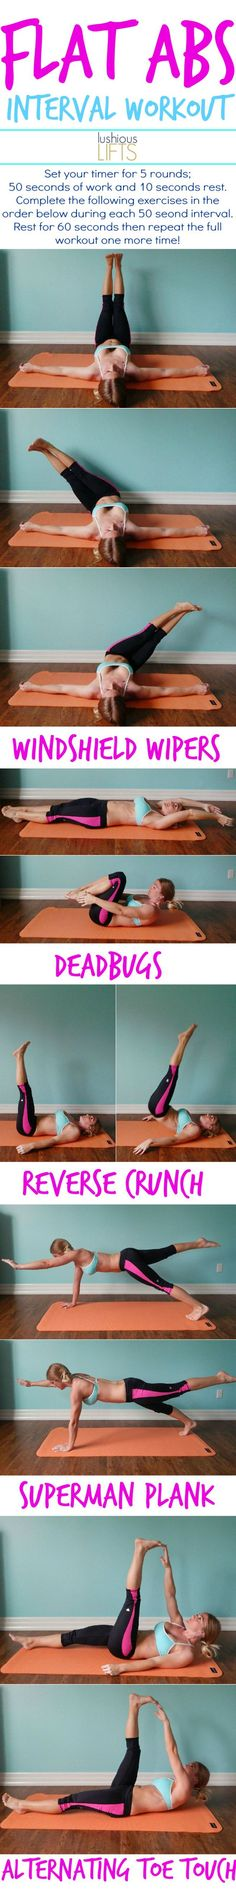 Flat Abs Interval Workout    Lushious Lifts